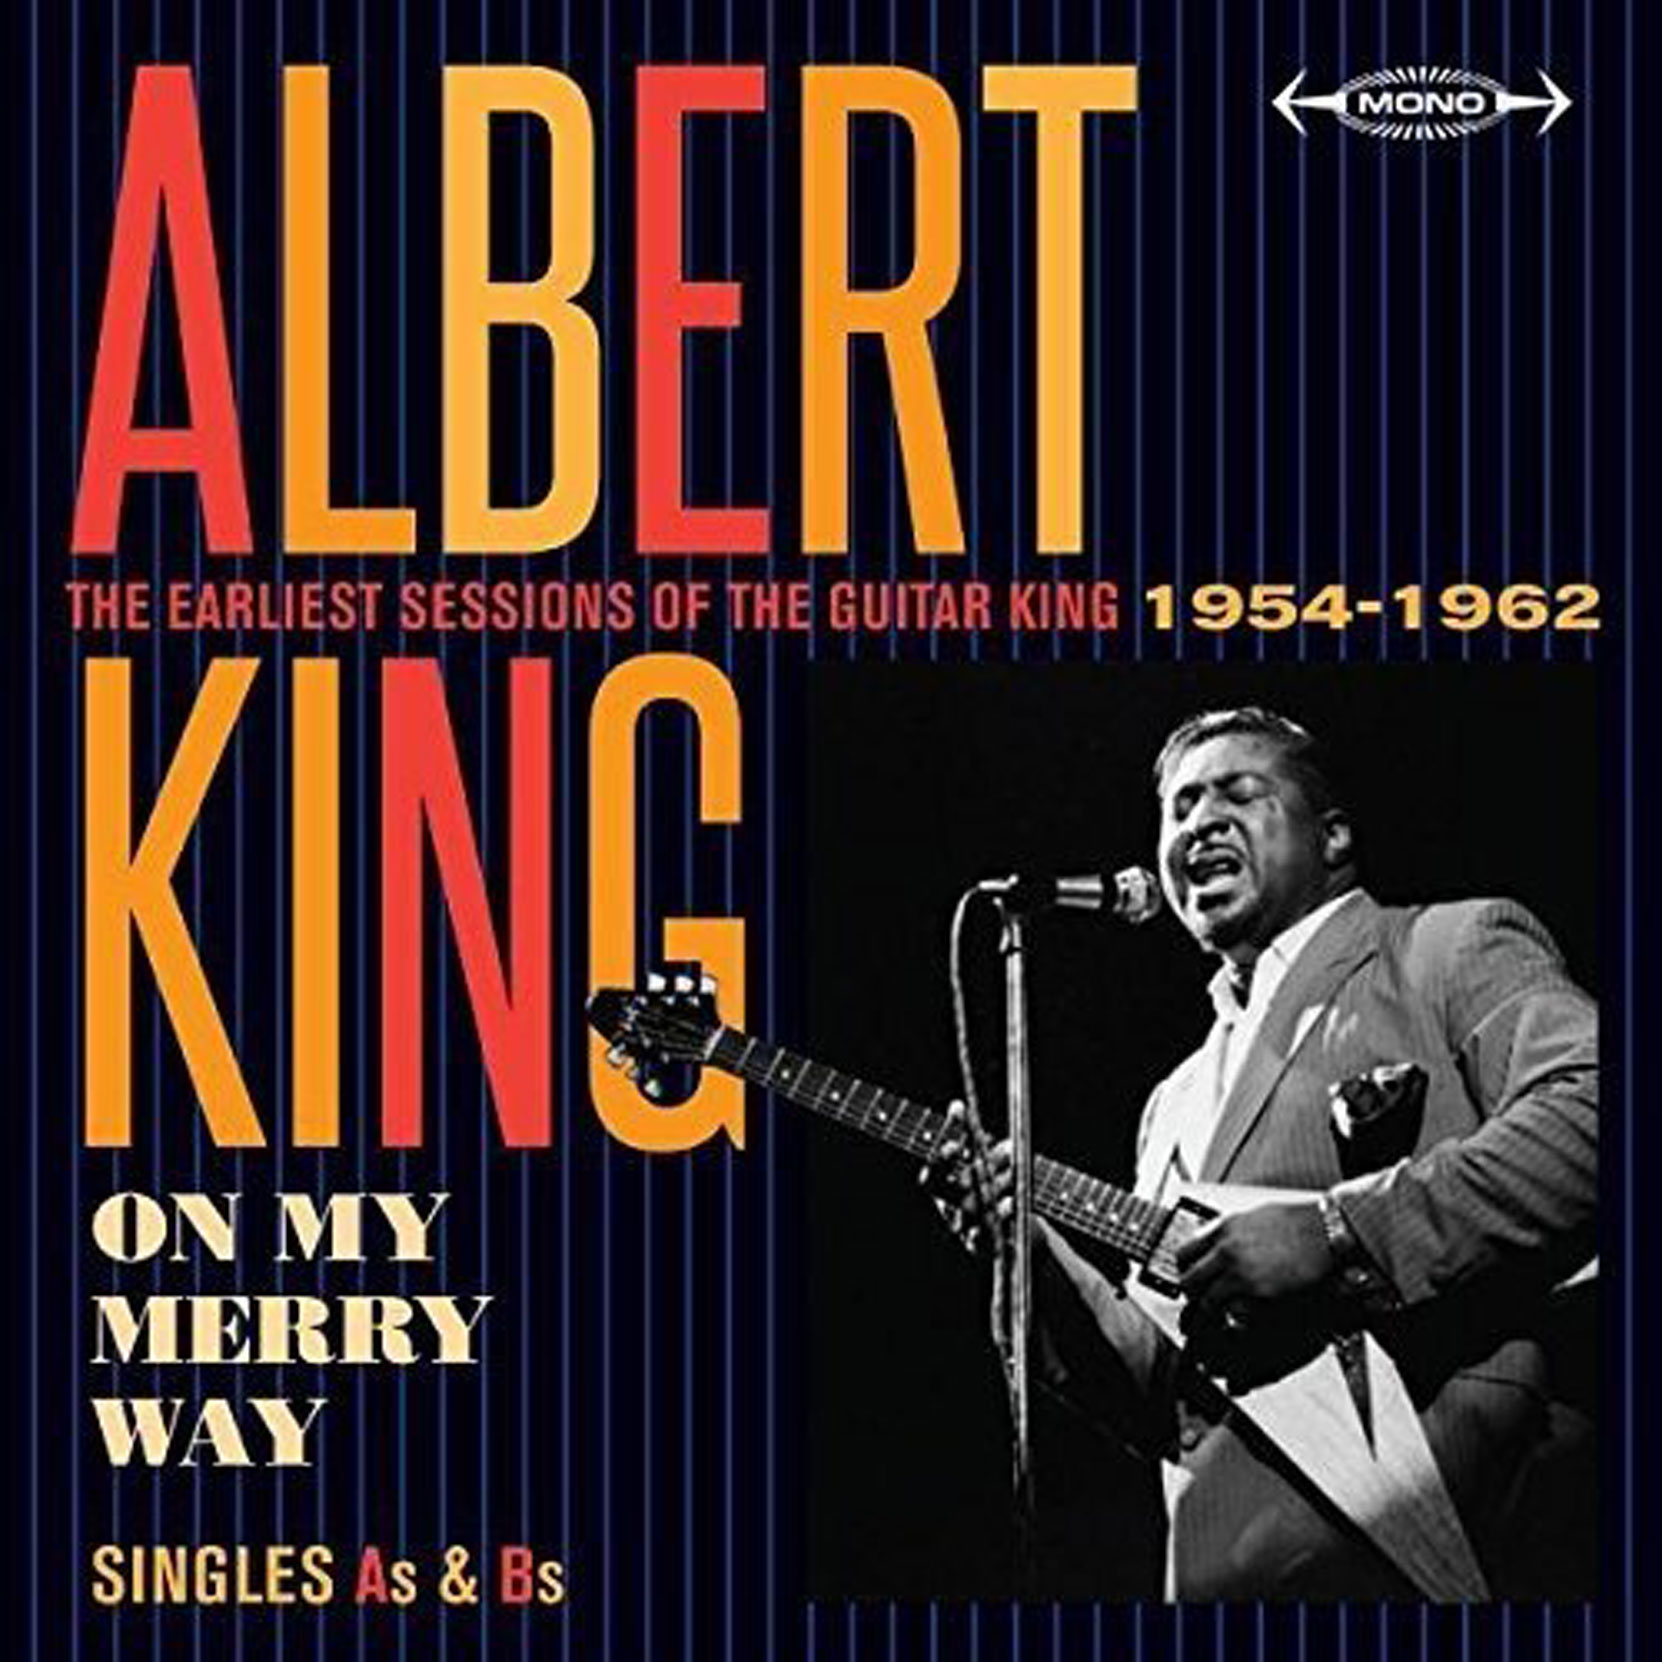 Albert King - On My Merry Way - Singles A's & B's 1954-1962, released on Jasmine Records. CD cover.